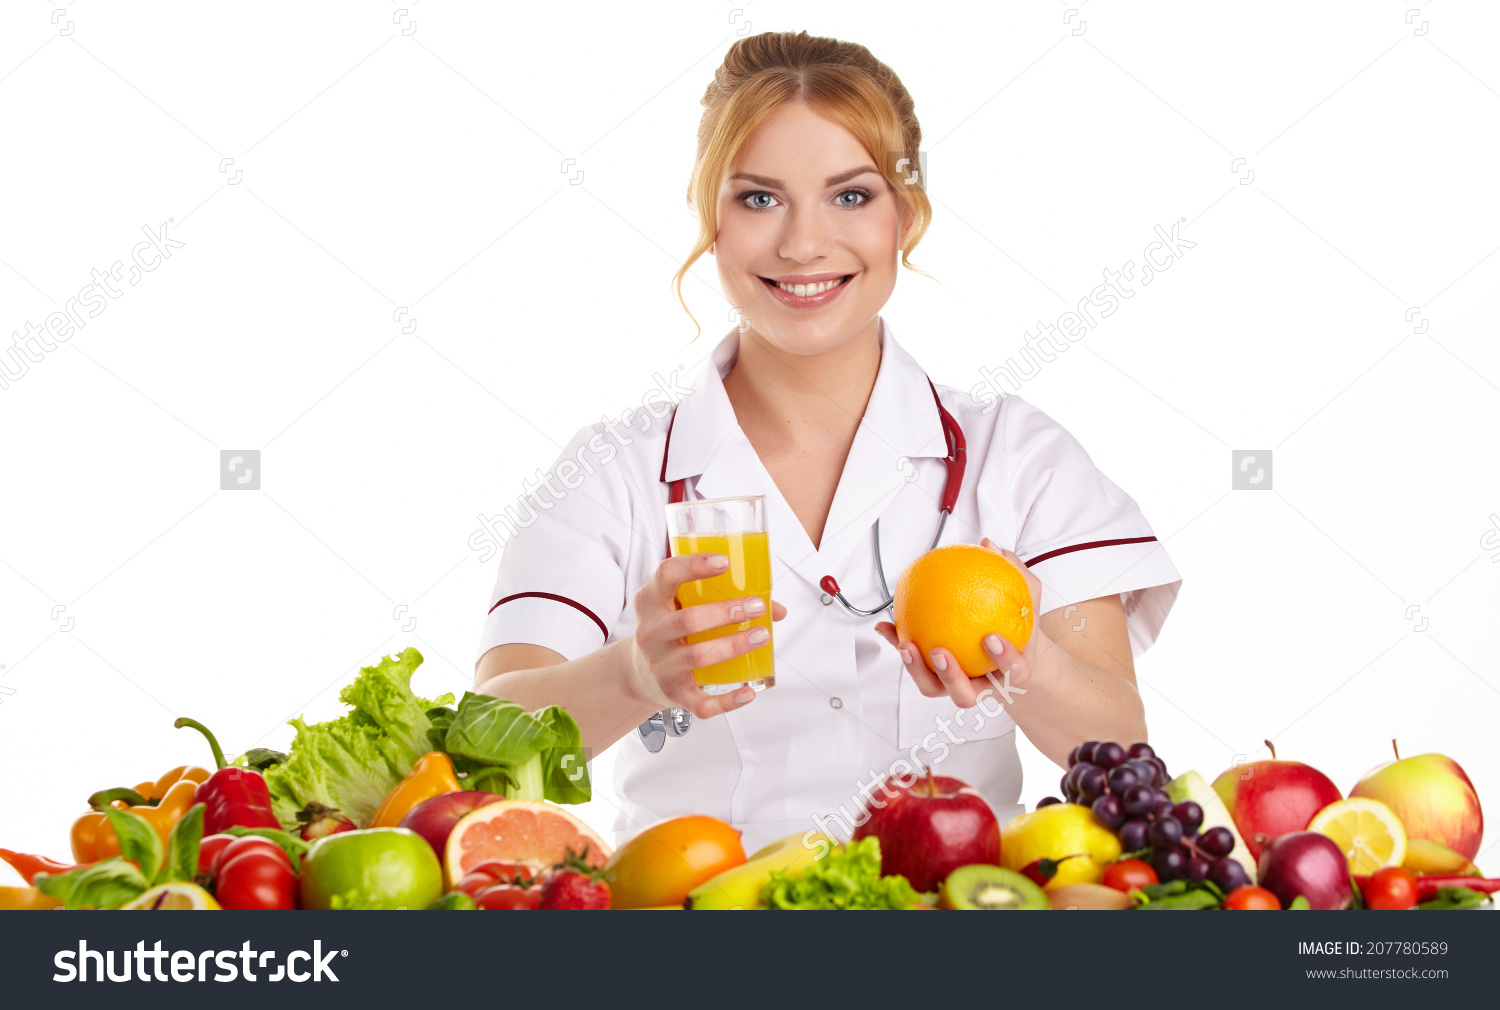 stock-photo-doctor-dietitian-recommending-healthy-food-207780589